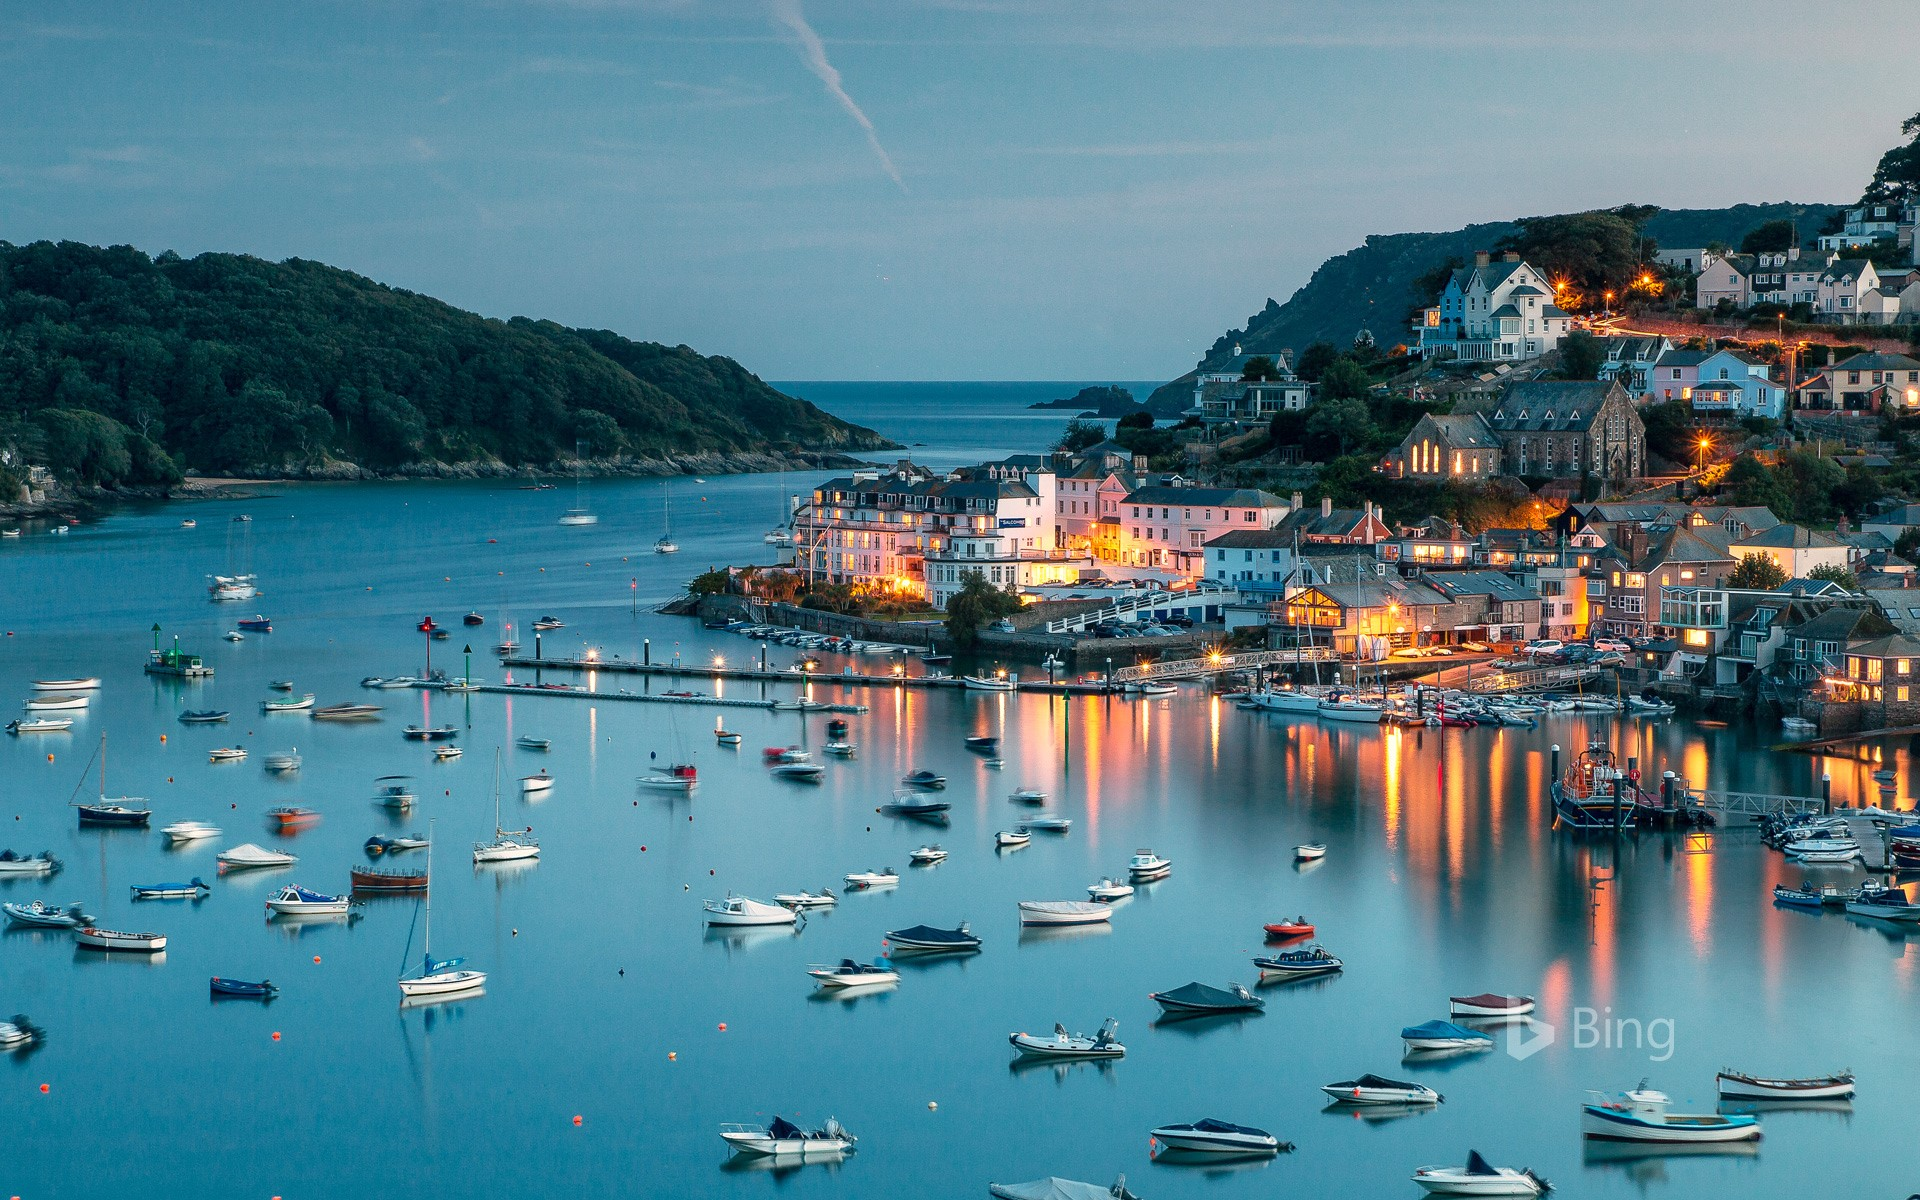 Salcombe Harbour on the south coast of Devon, England